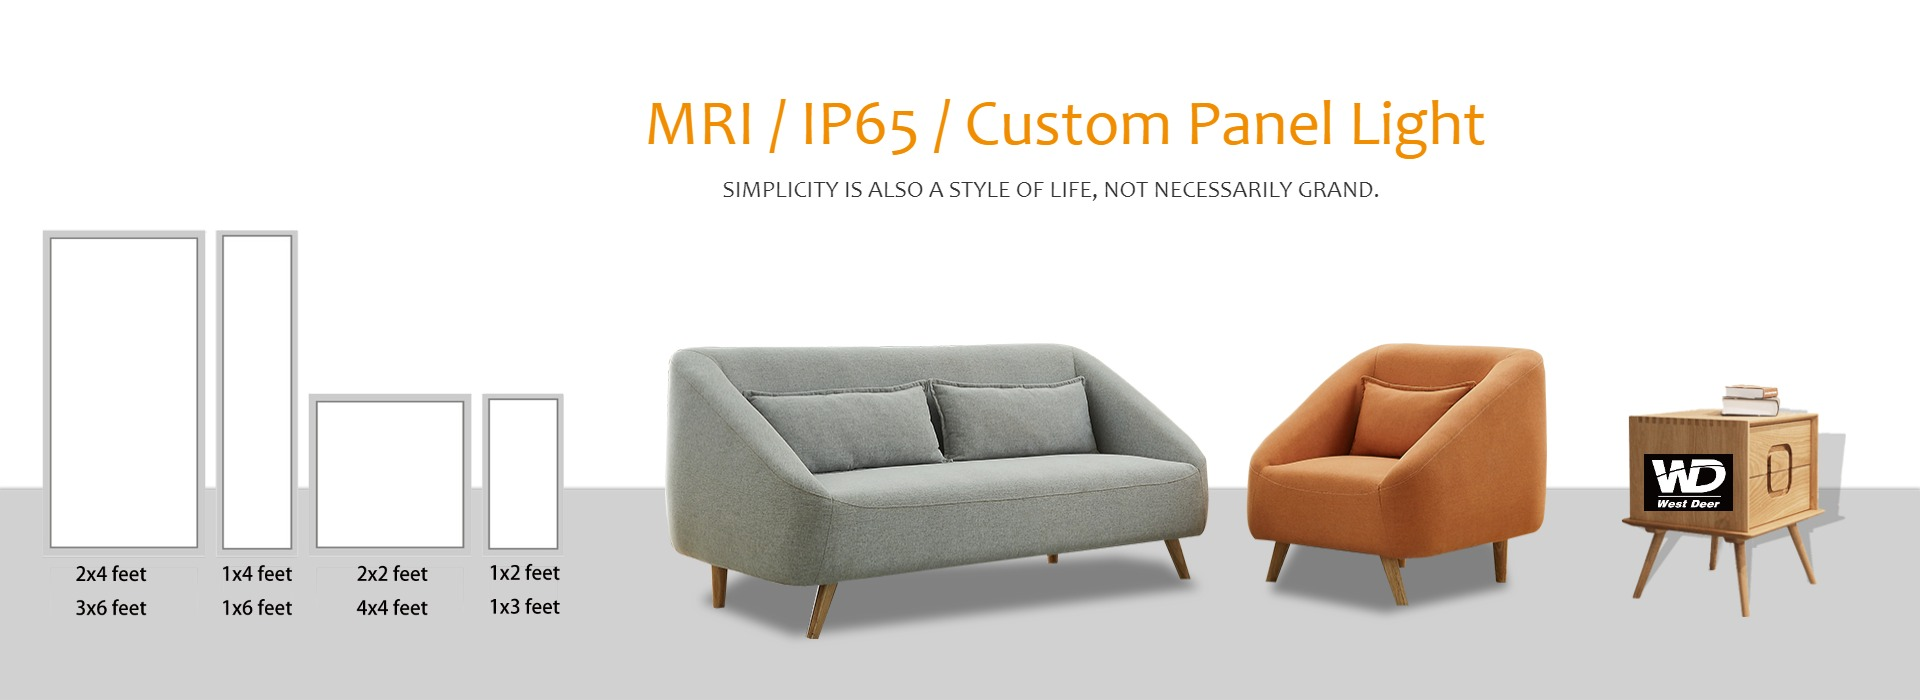 MRI IP67 Custom Dimension Panel Light